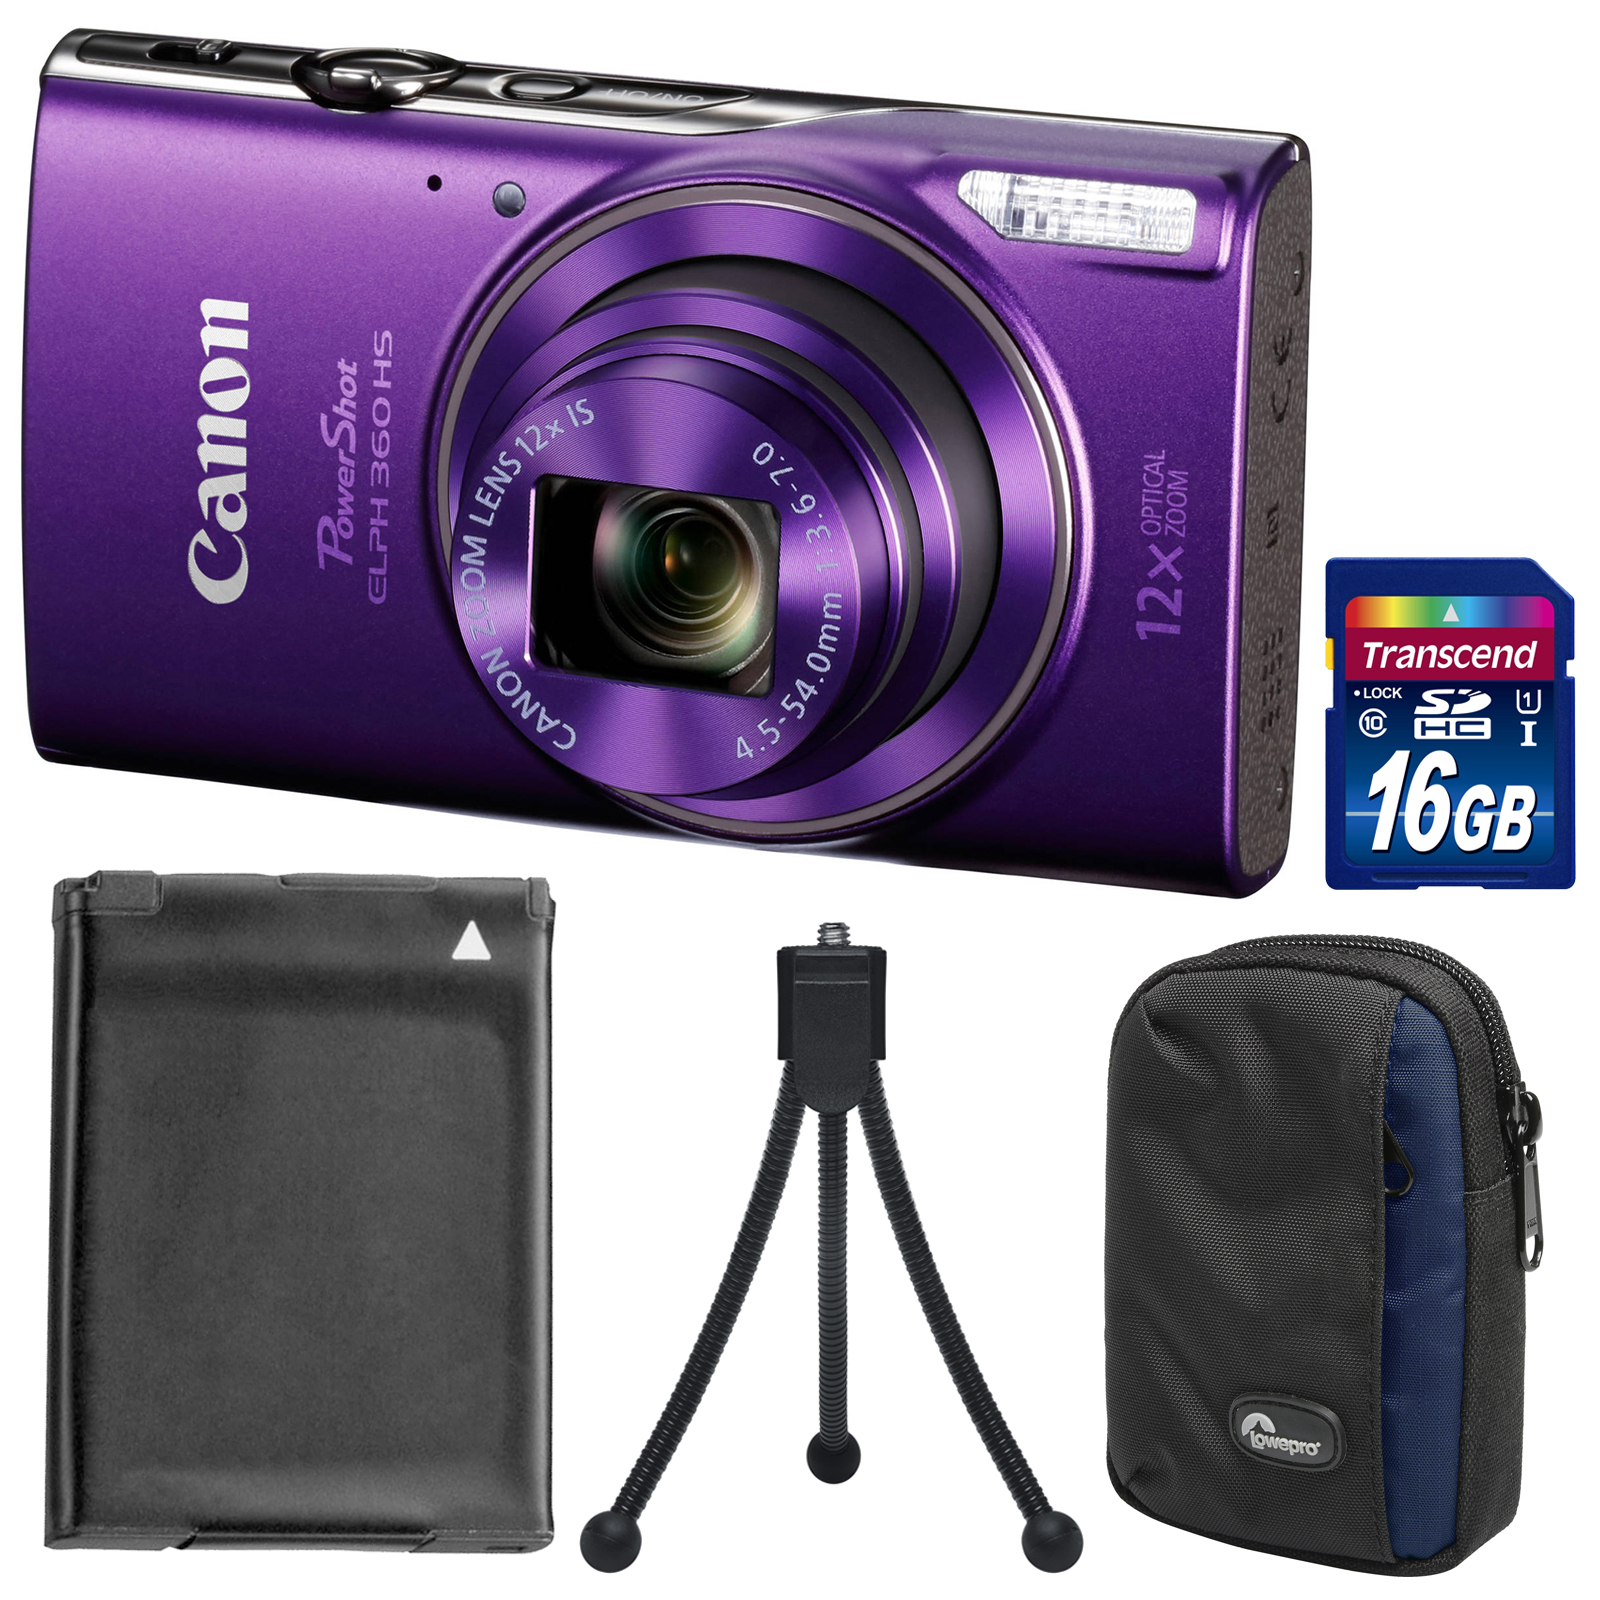 Canon PowerShot Elph 360 HS Wi-Fi Digital Camera (Purple) with 16GB Card + Battery + Case + Tripod + Kit